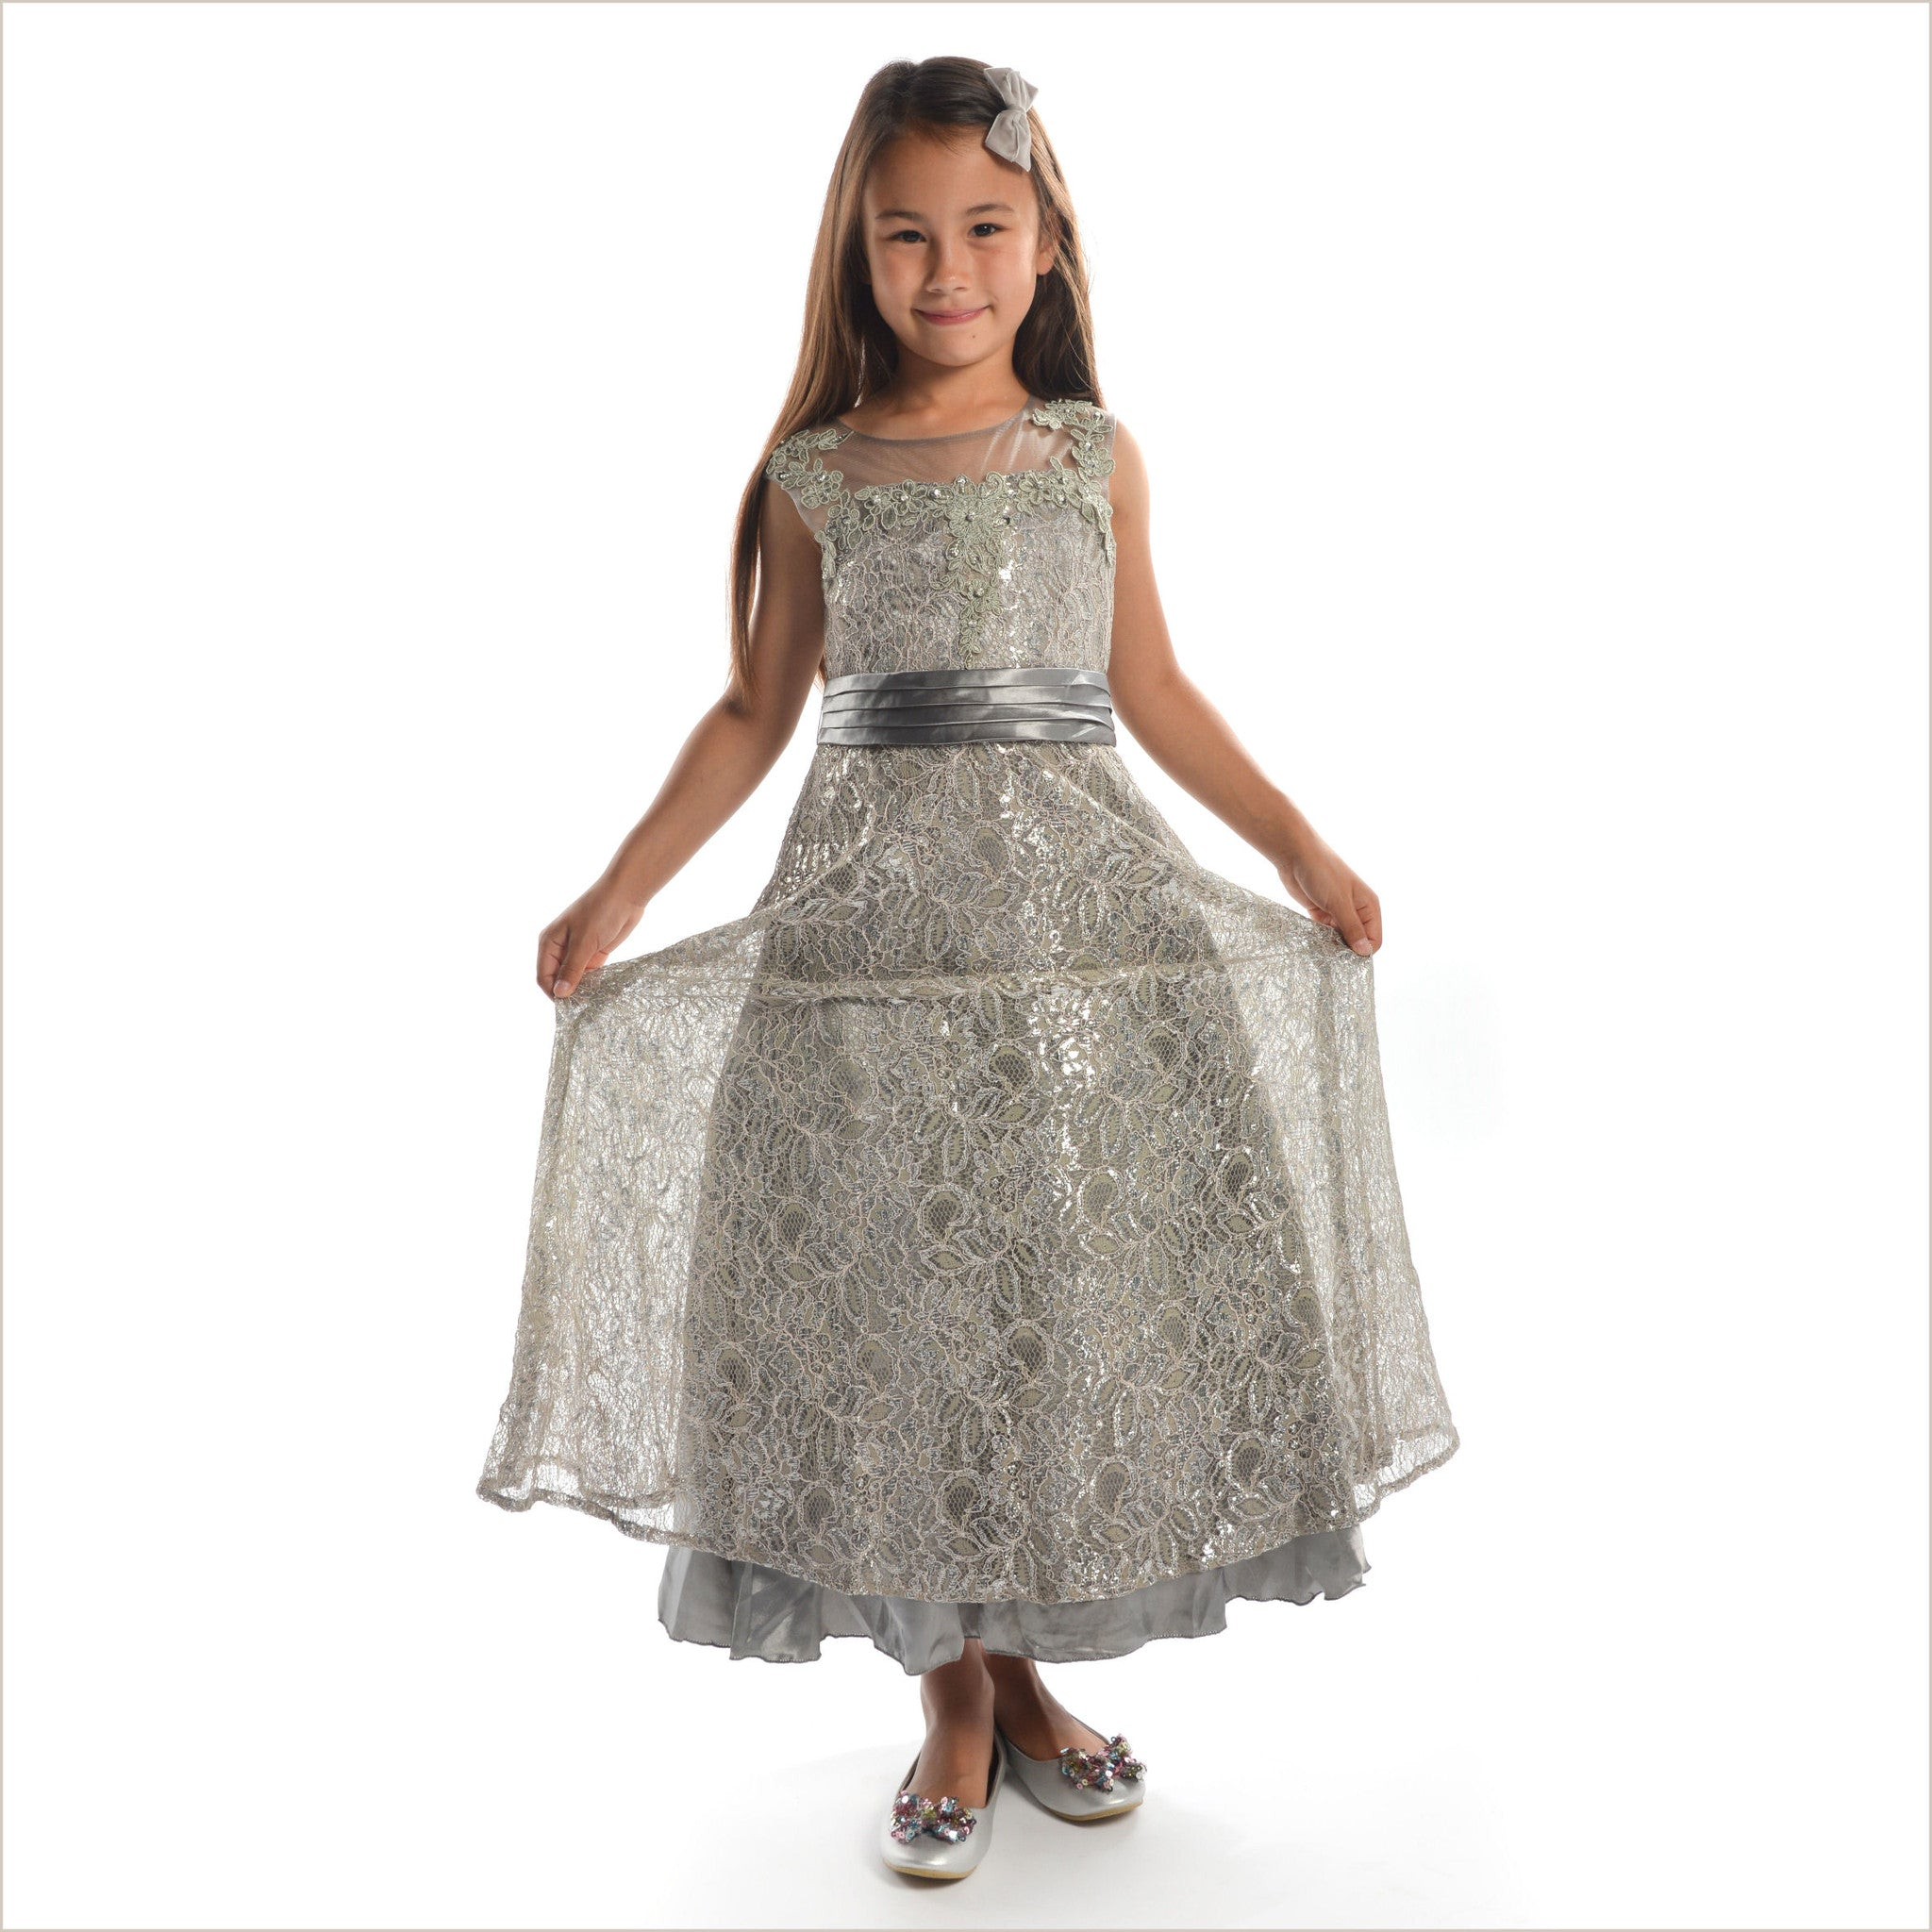 Diane stunning silver junior bridesmaid dress 8 14 years ombrellifo Image collections